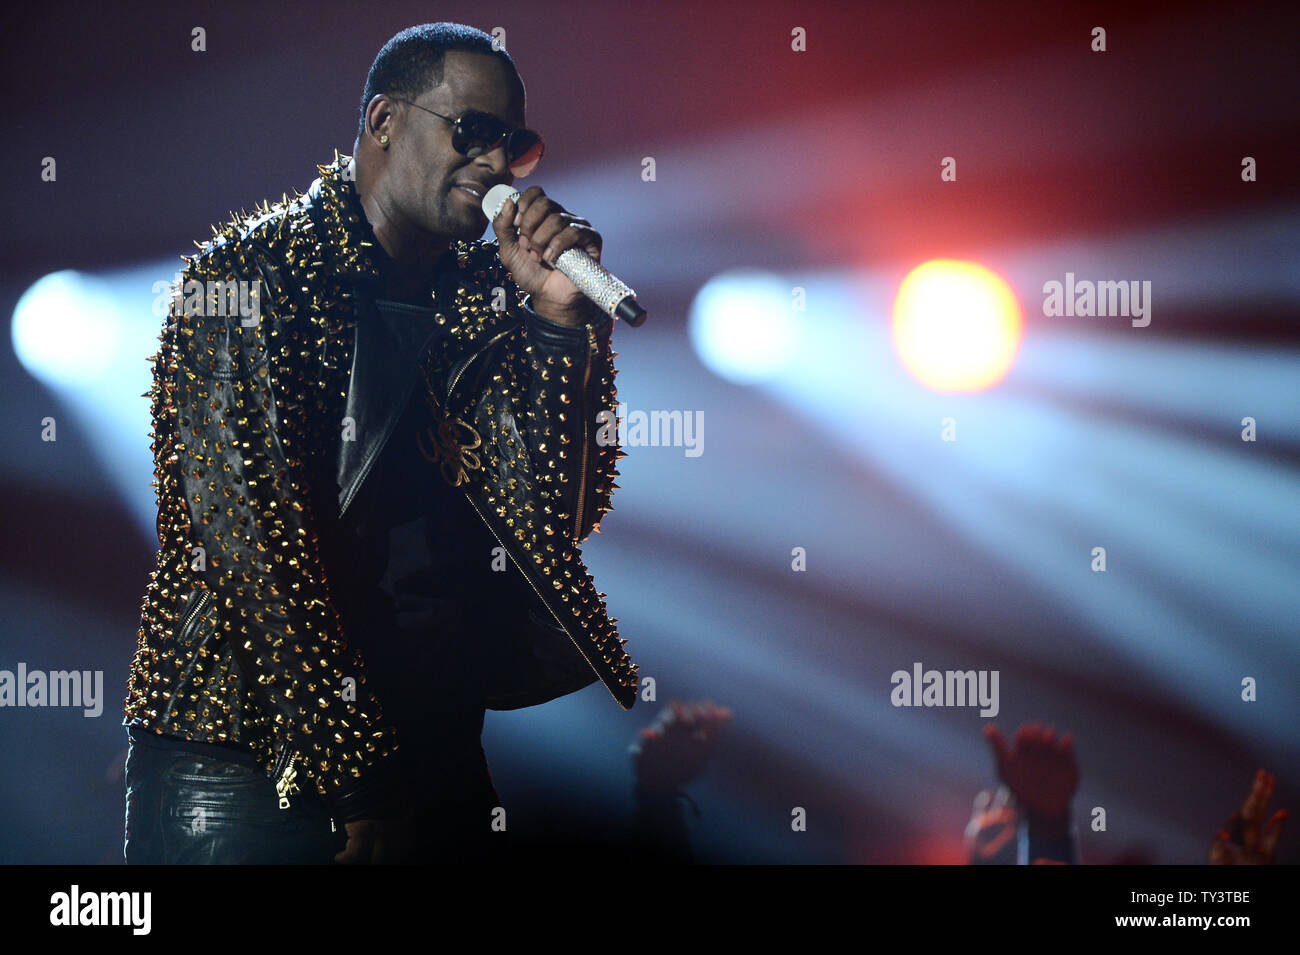 R  Kelly Singer Stock Photos & R  Kelly Singer Stock Images